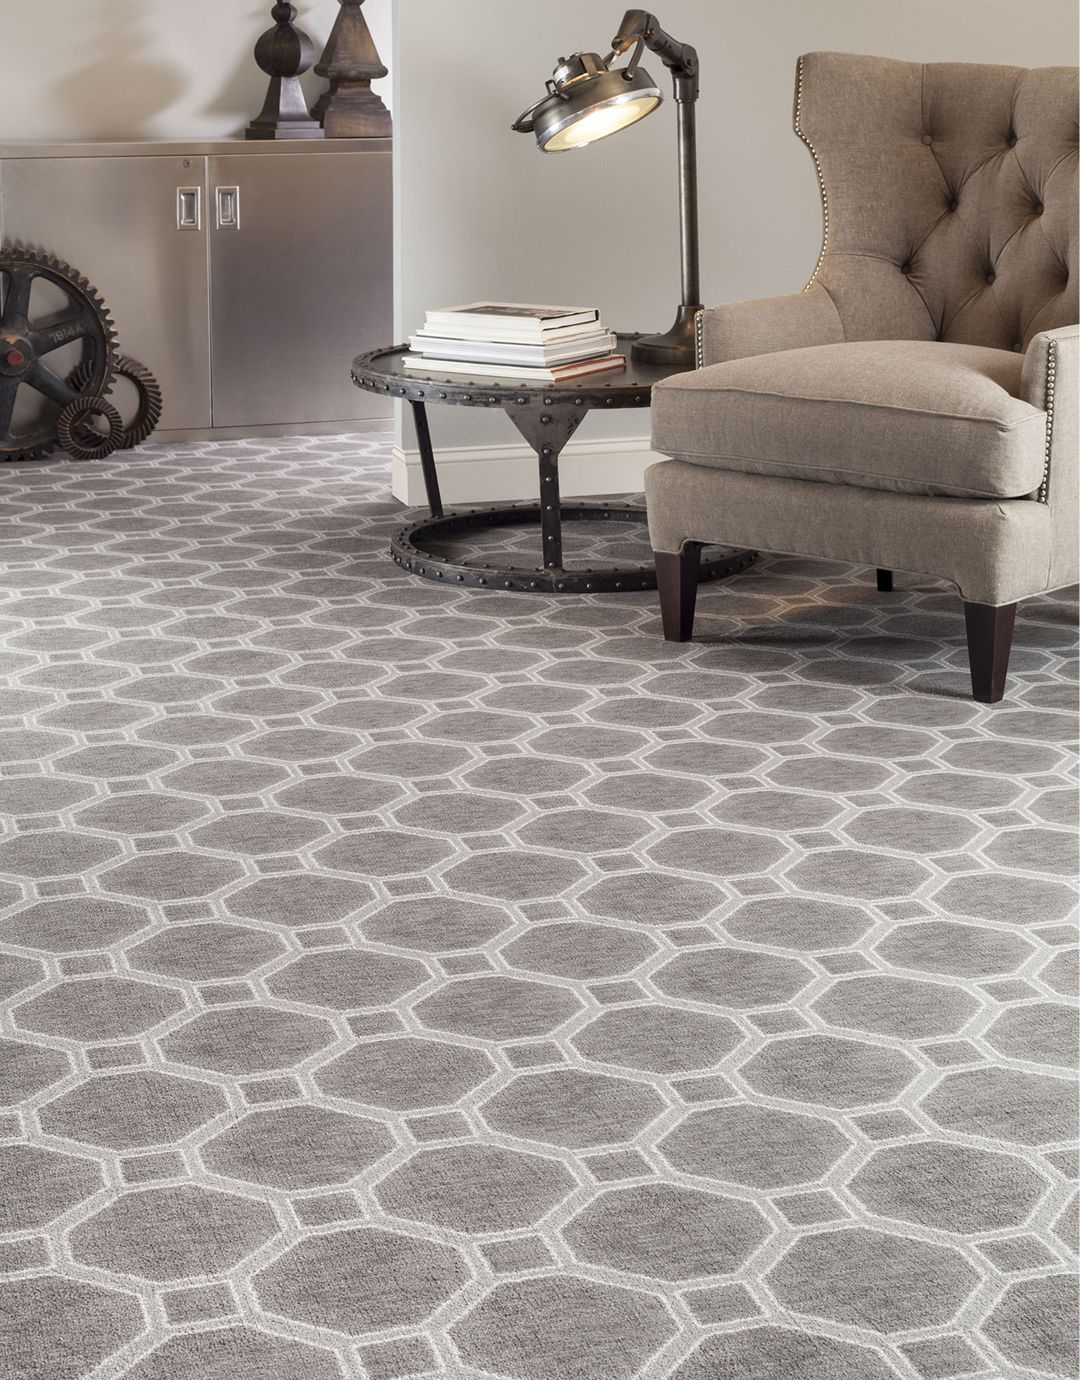 If Your Style Is More Industrial Patterned Carpet Can A